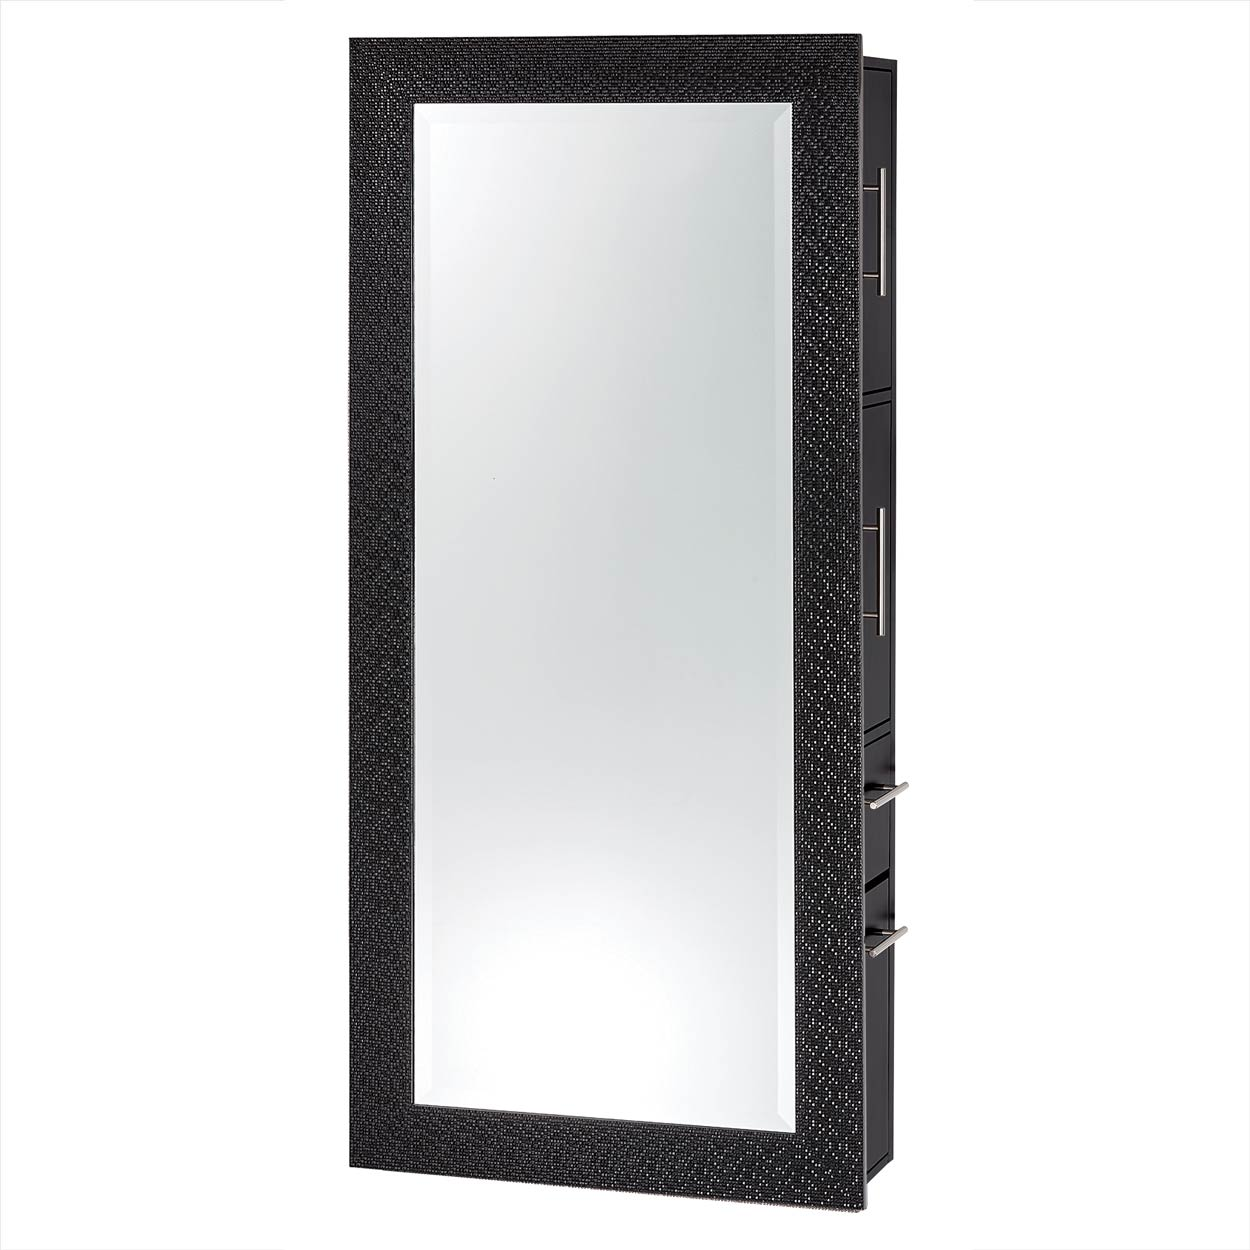 Diamond Framed Mirror Wall Hanging Styling Station  main product image